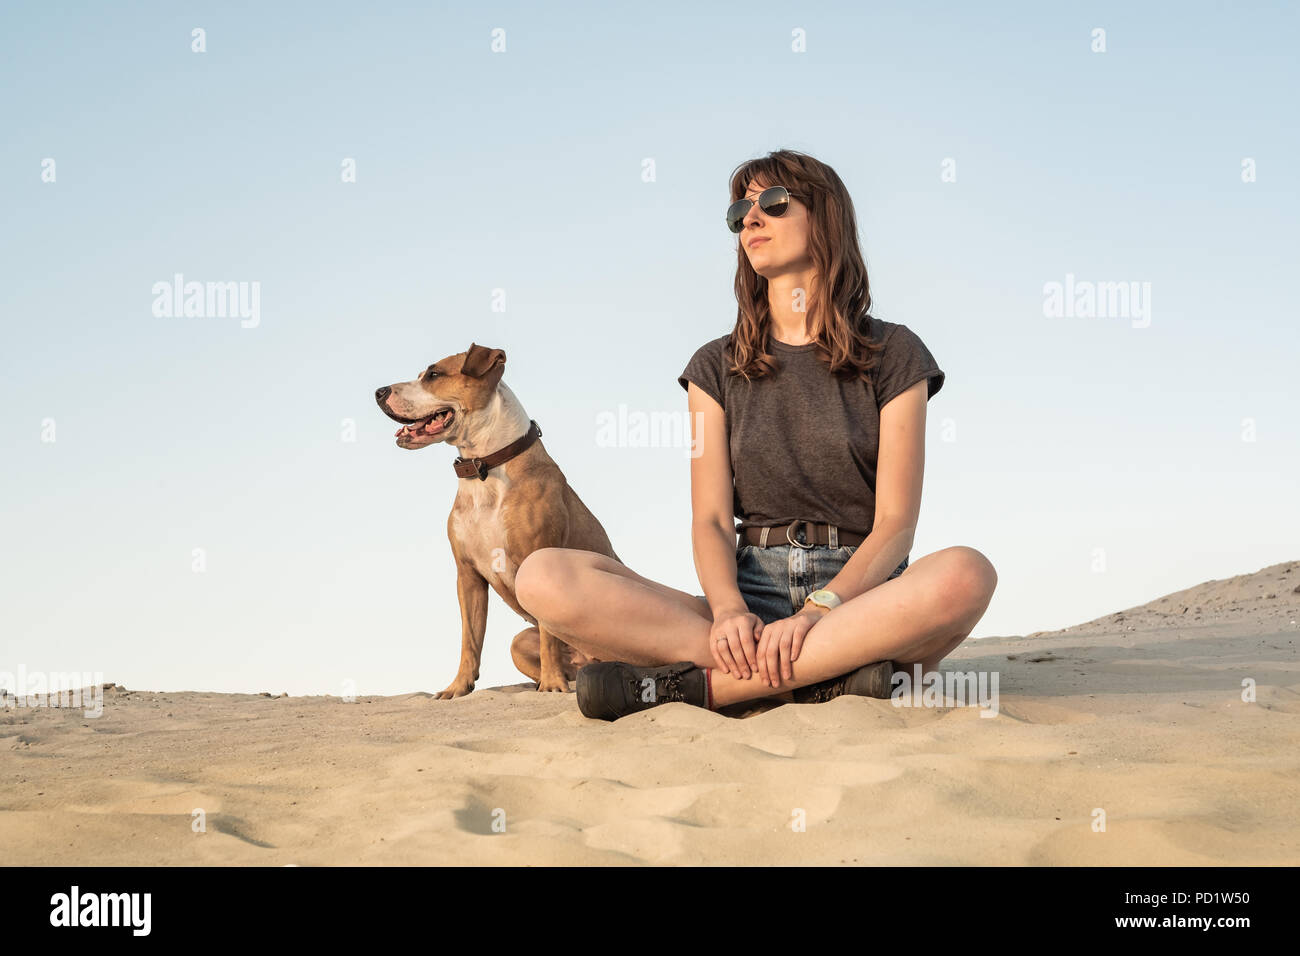 Beautiful young woman in sunglasses with dog sit on sand. Girl in hiking casual clothes and staffordshire terrier puppy sitting on sandy beach or in d - Stock Image